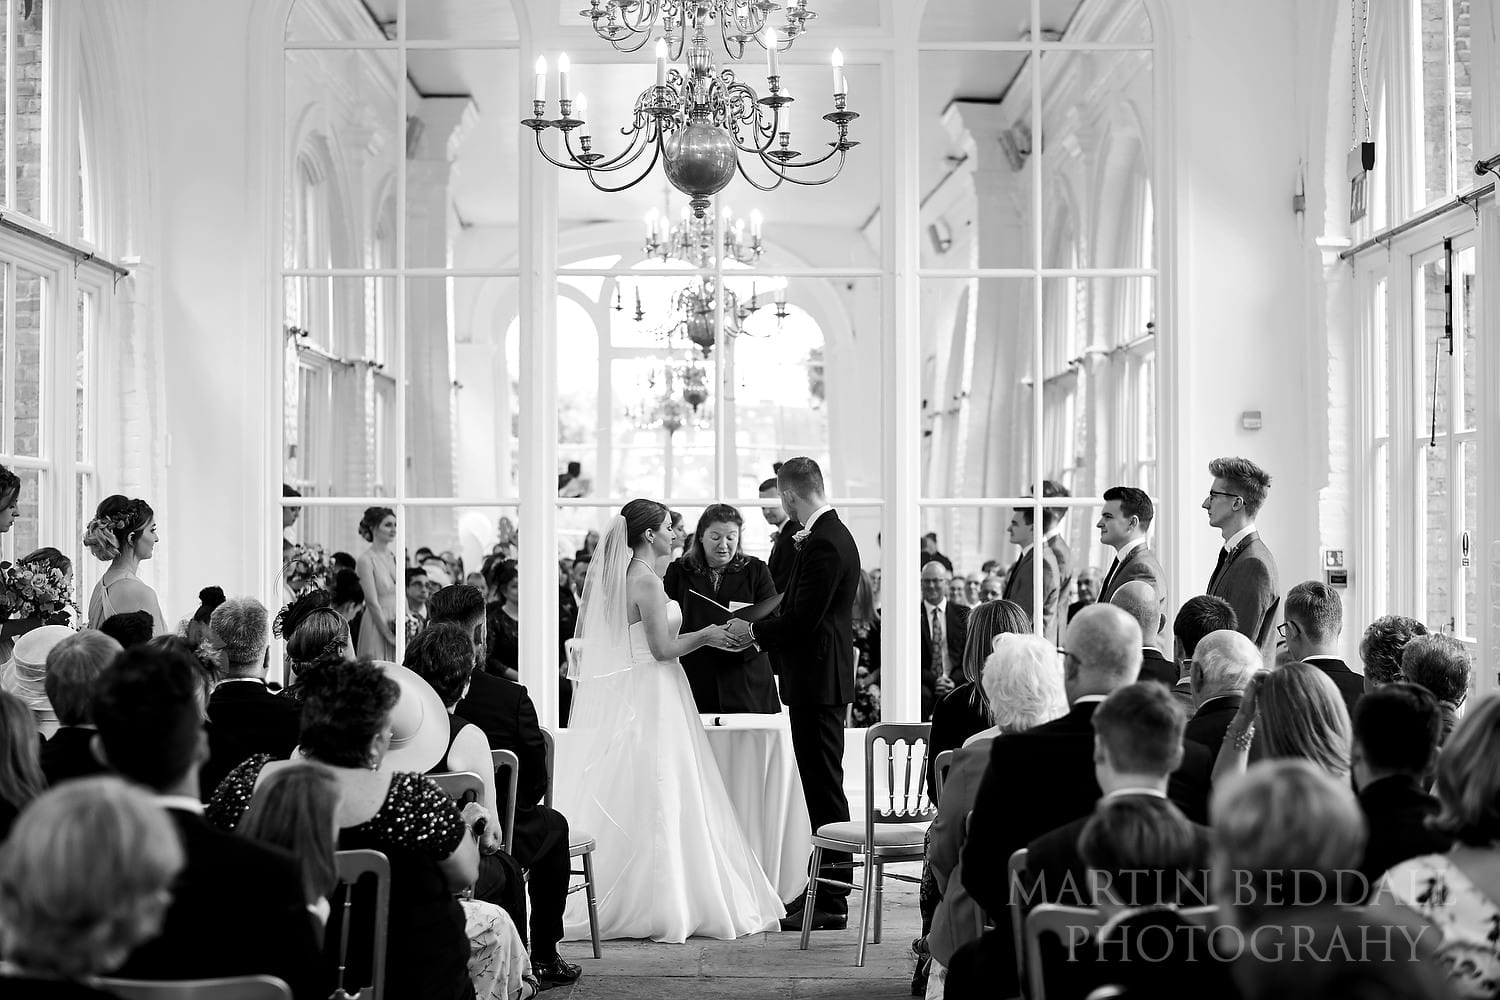 Wedding ceremony in The Orangery in Holland Park